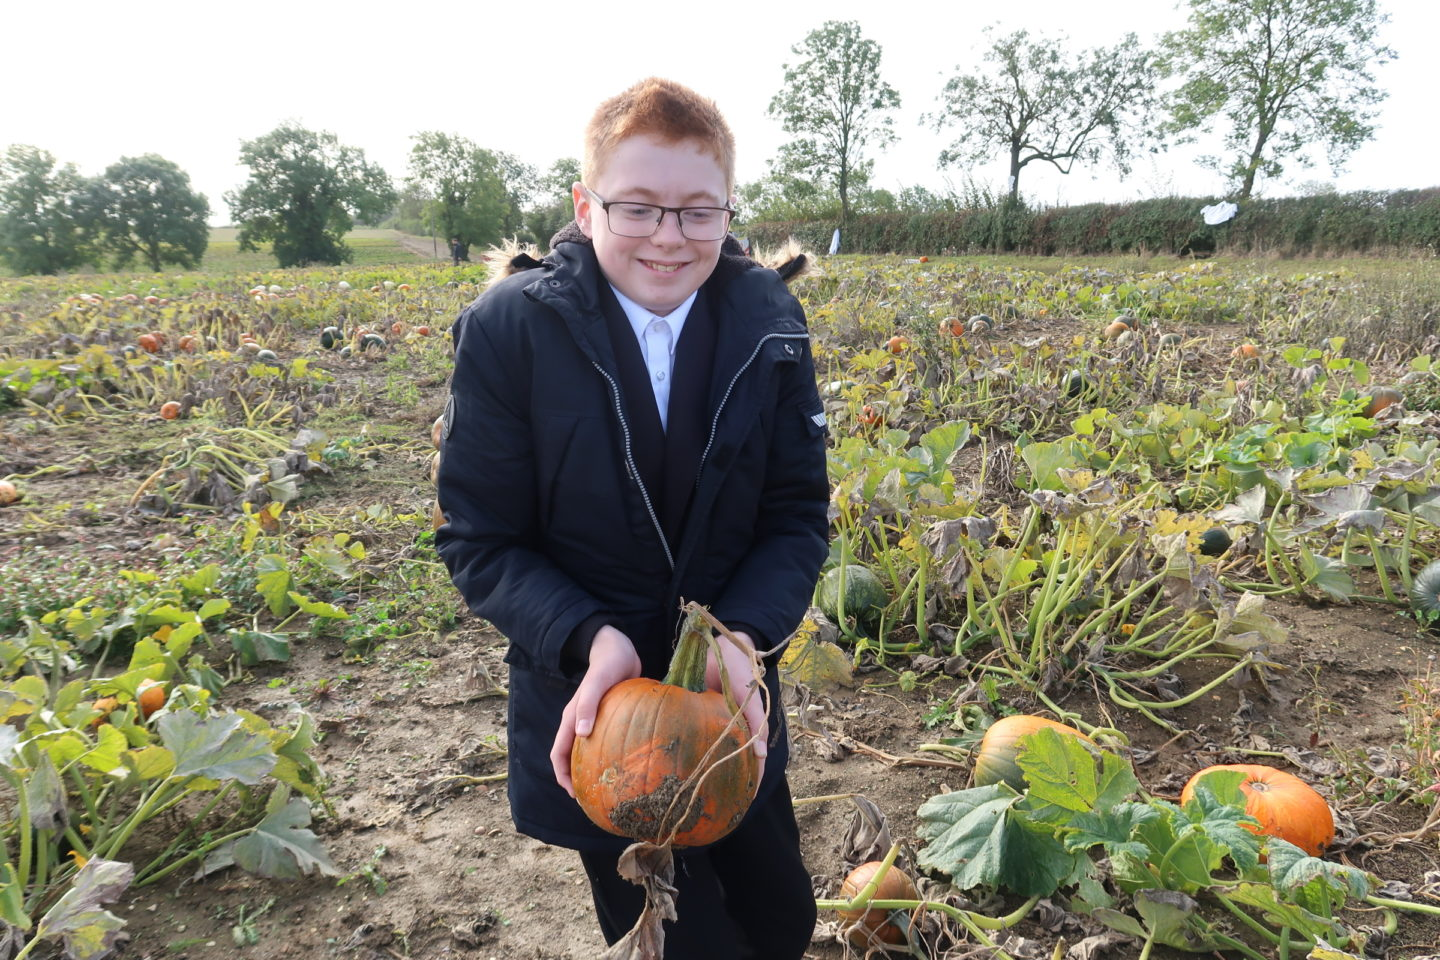 Pick your own Pumpkin at Hill Farm, Chesterton